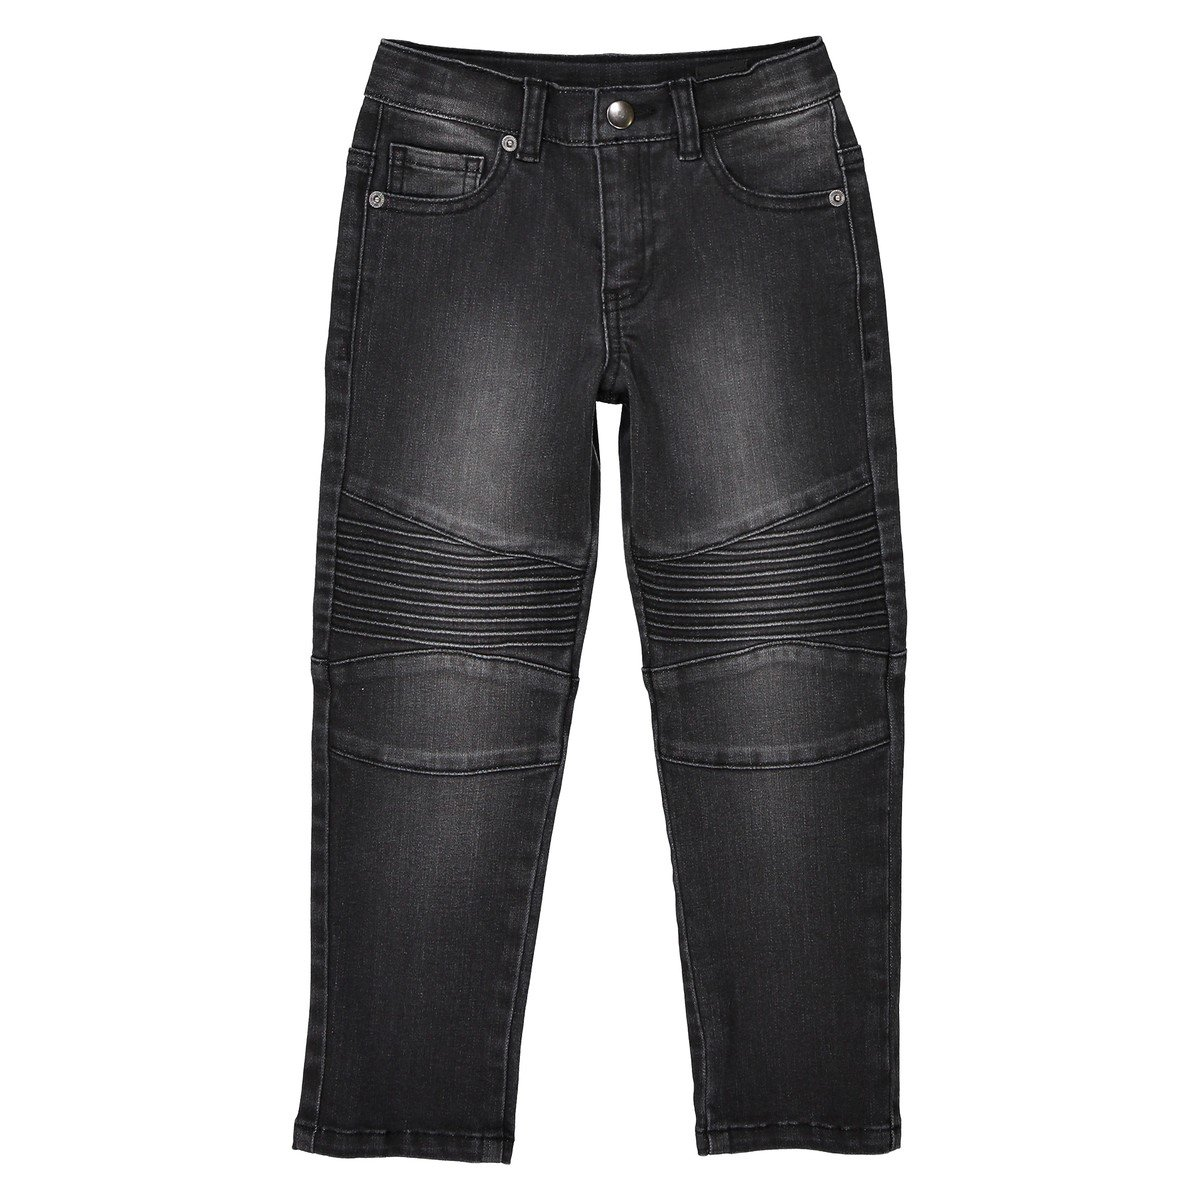 La Redoute Collections Big Boys Super Tough Jeans 3-12 Years Black Size 6 Years 44 in.